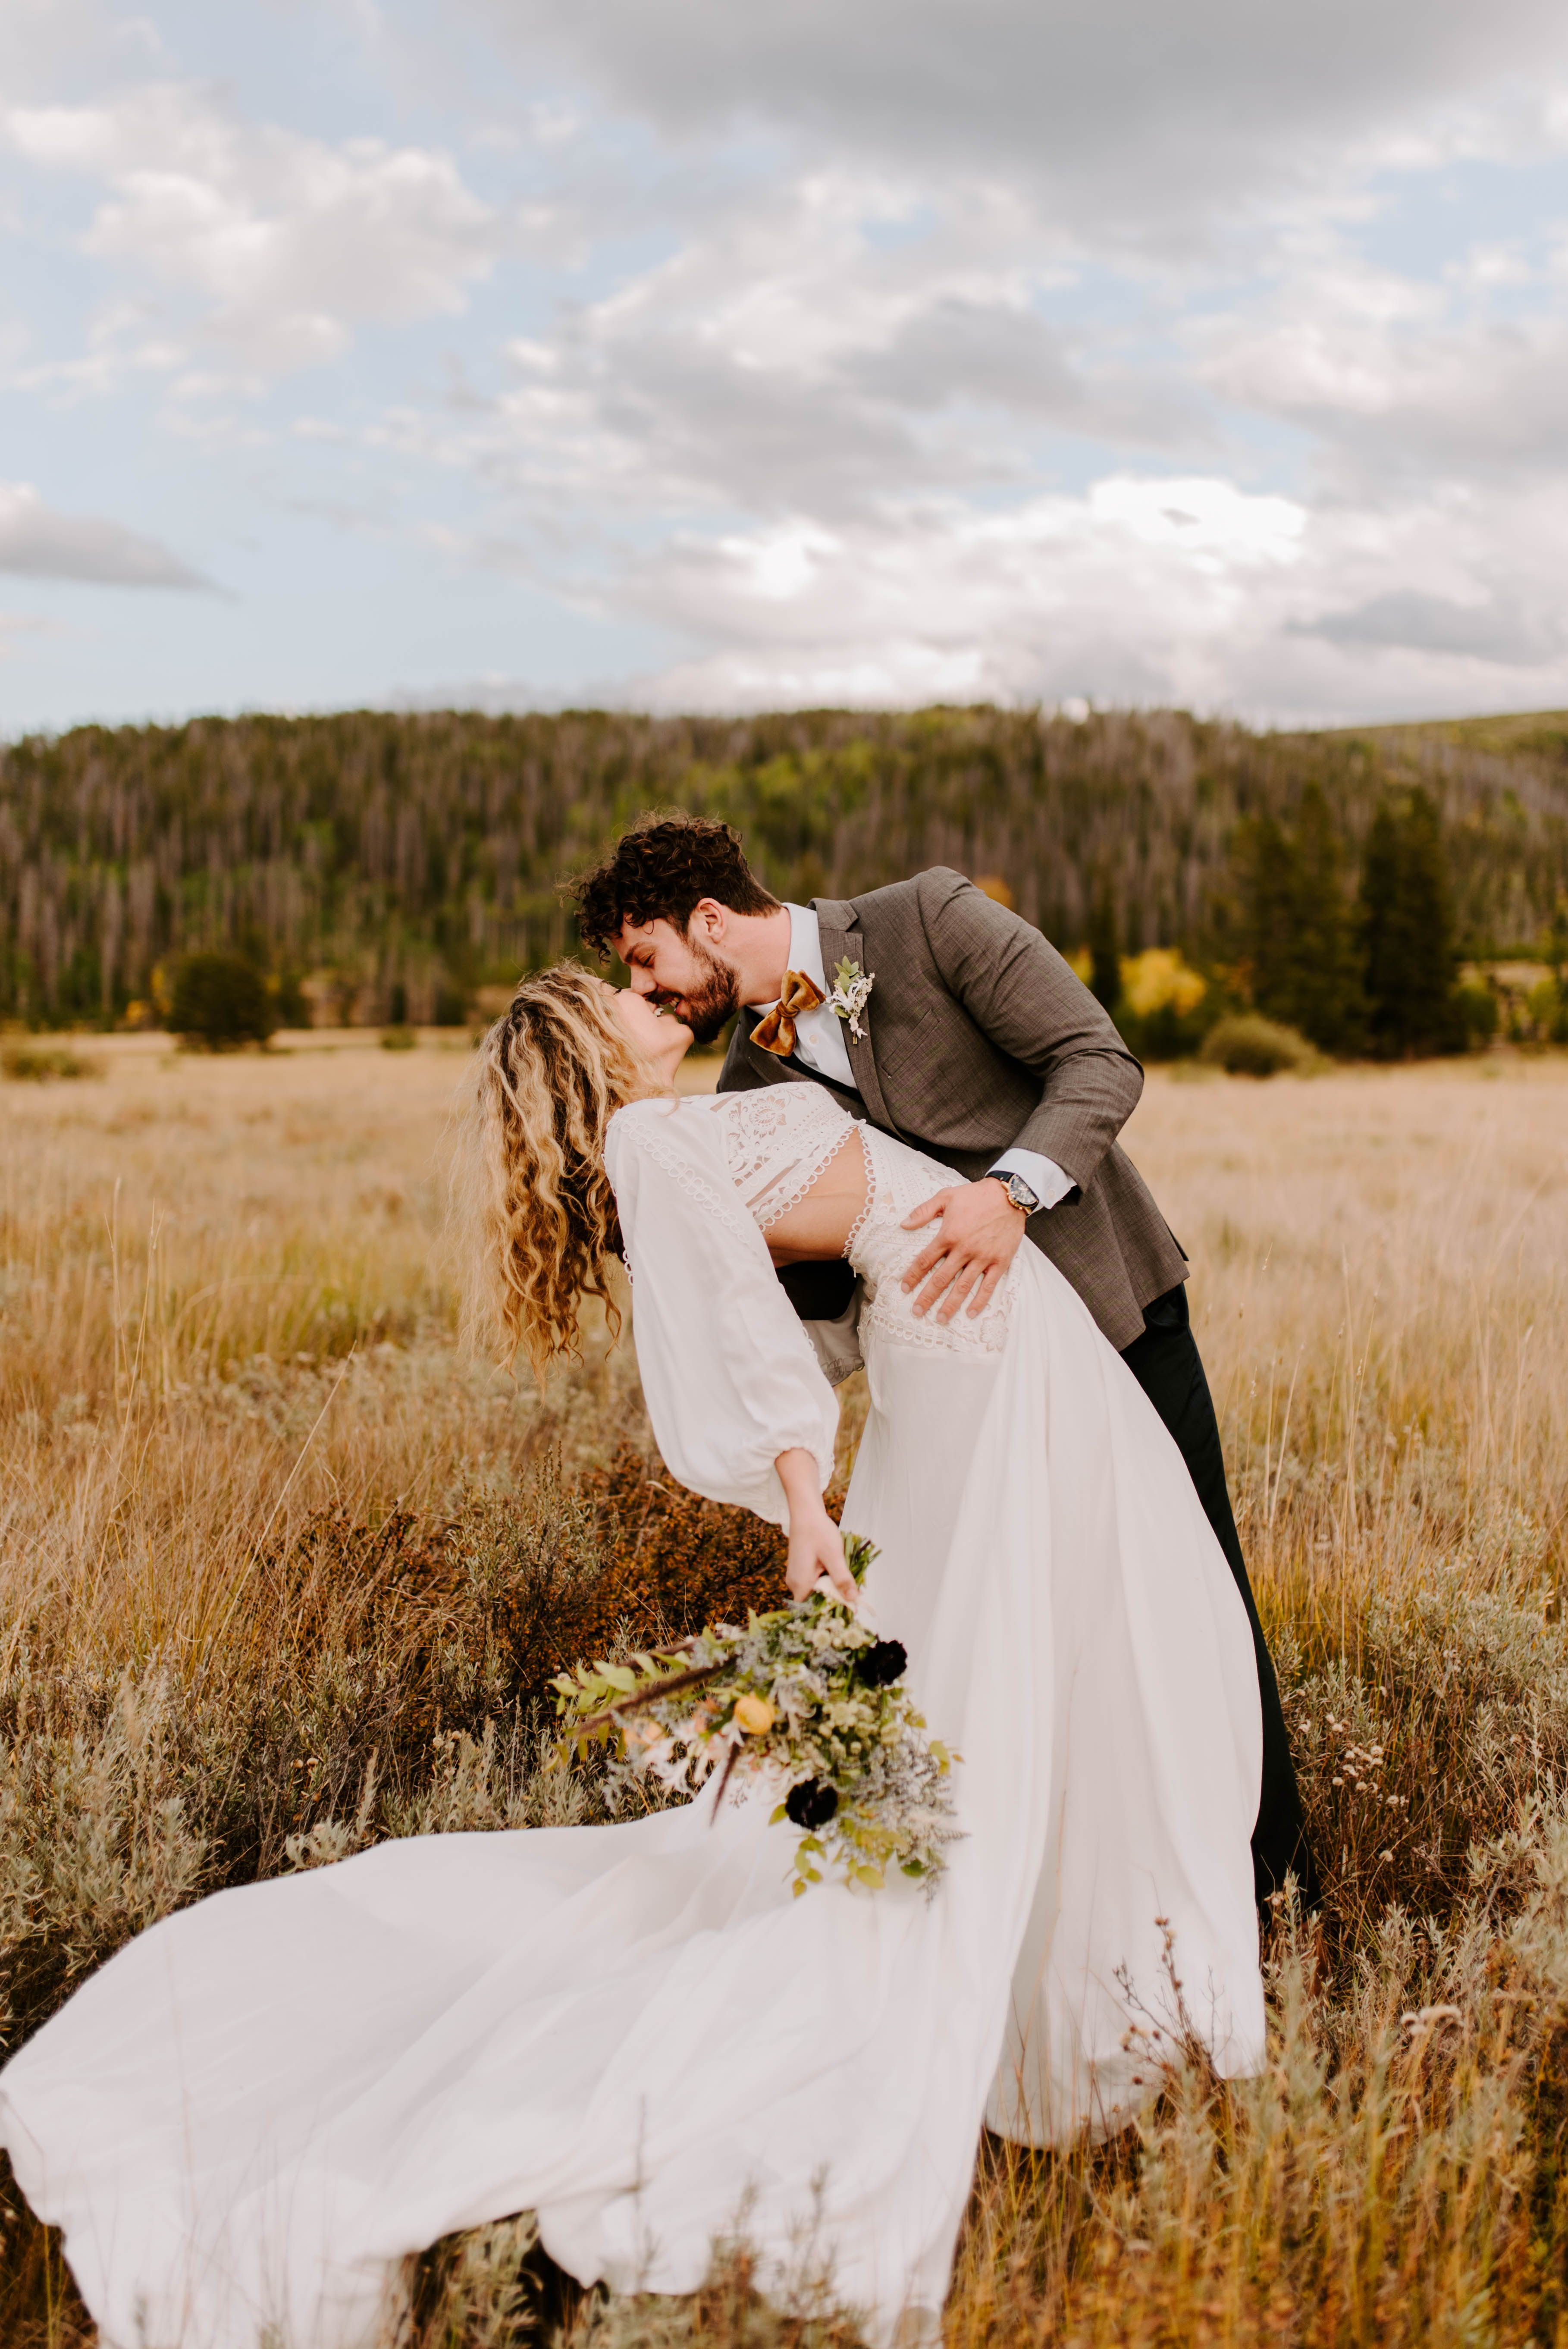 Christian + Rachel Elopement Winter Park, CO Hope